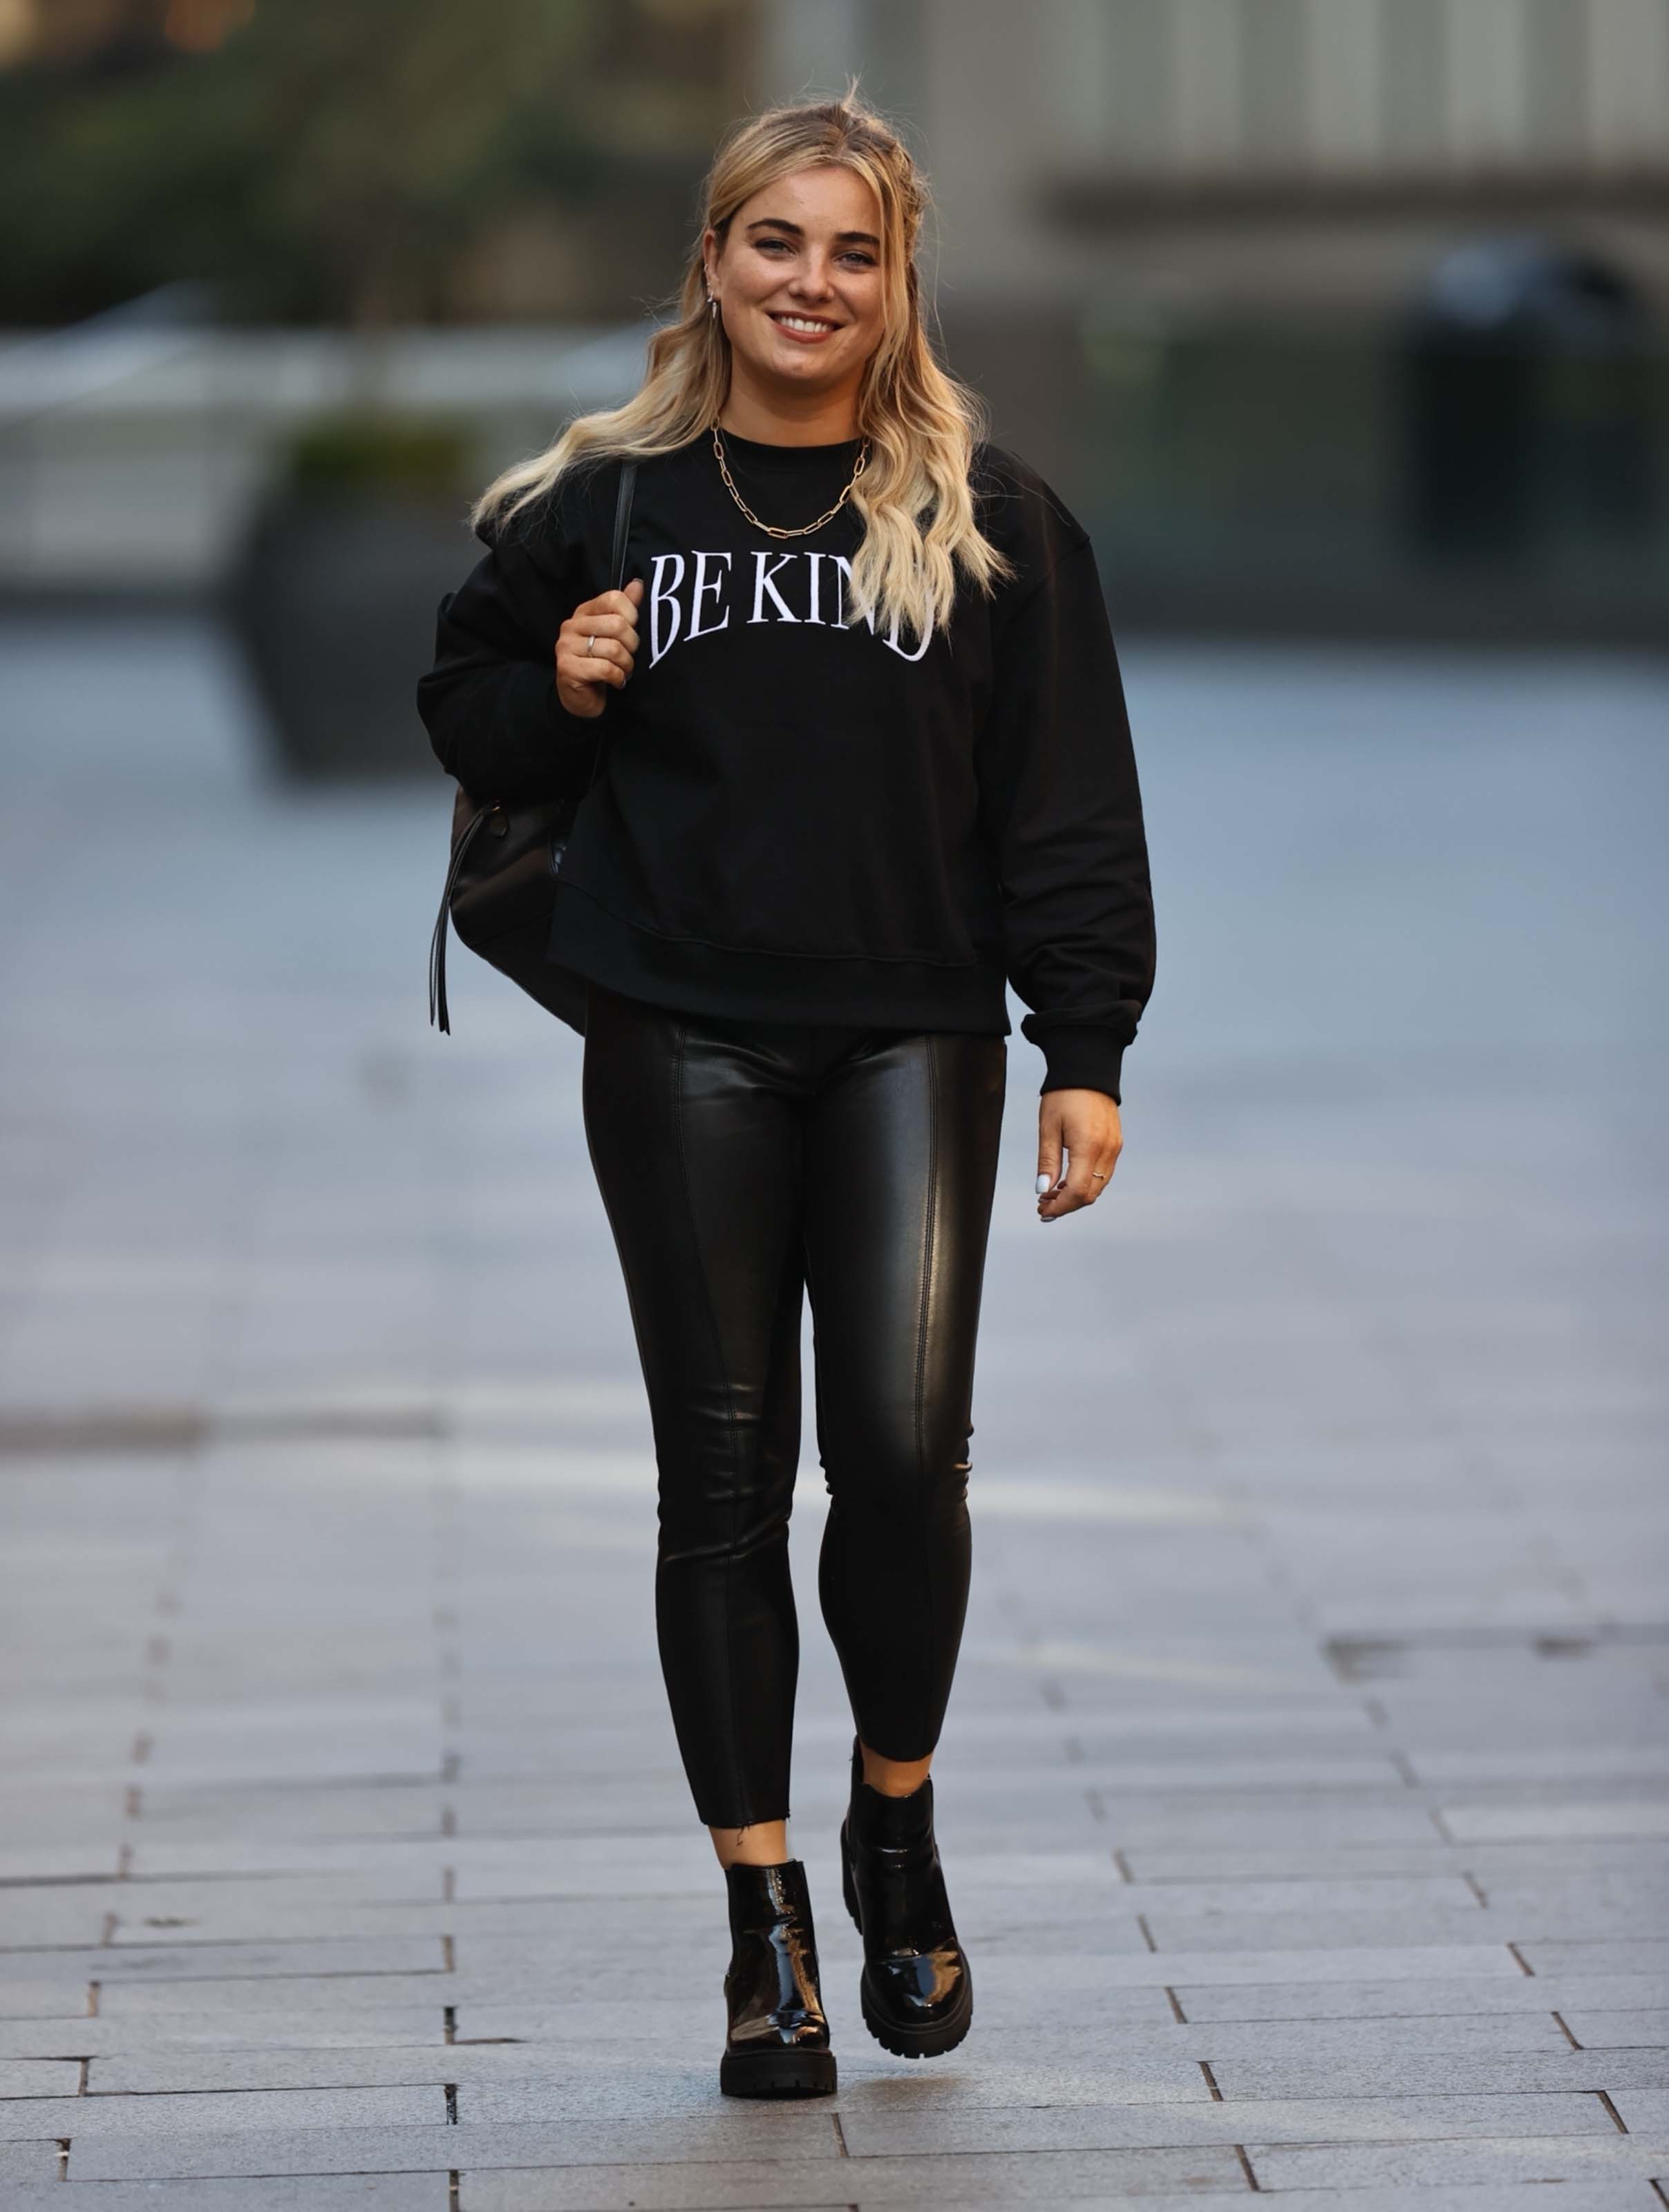 Sian Welby seen at Capital radio in London